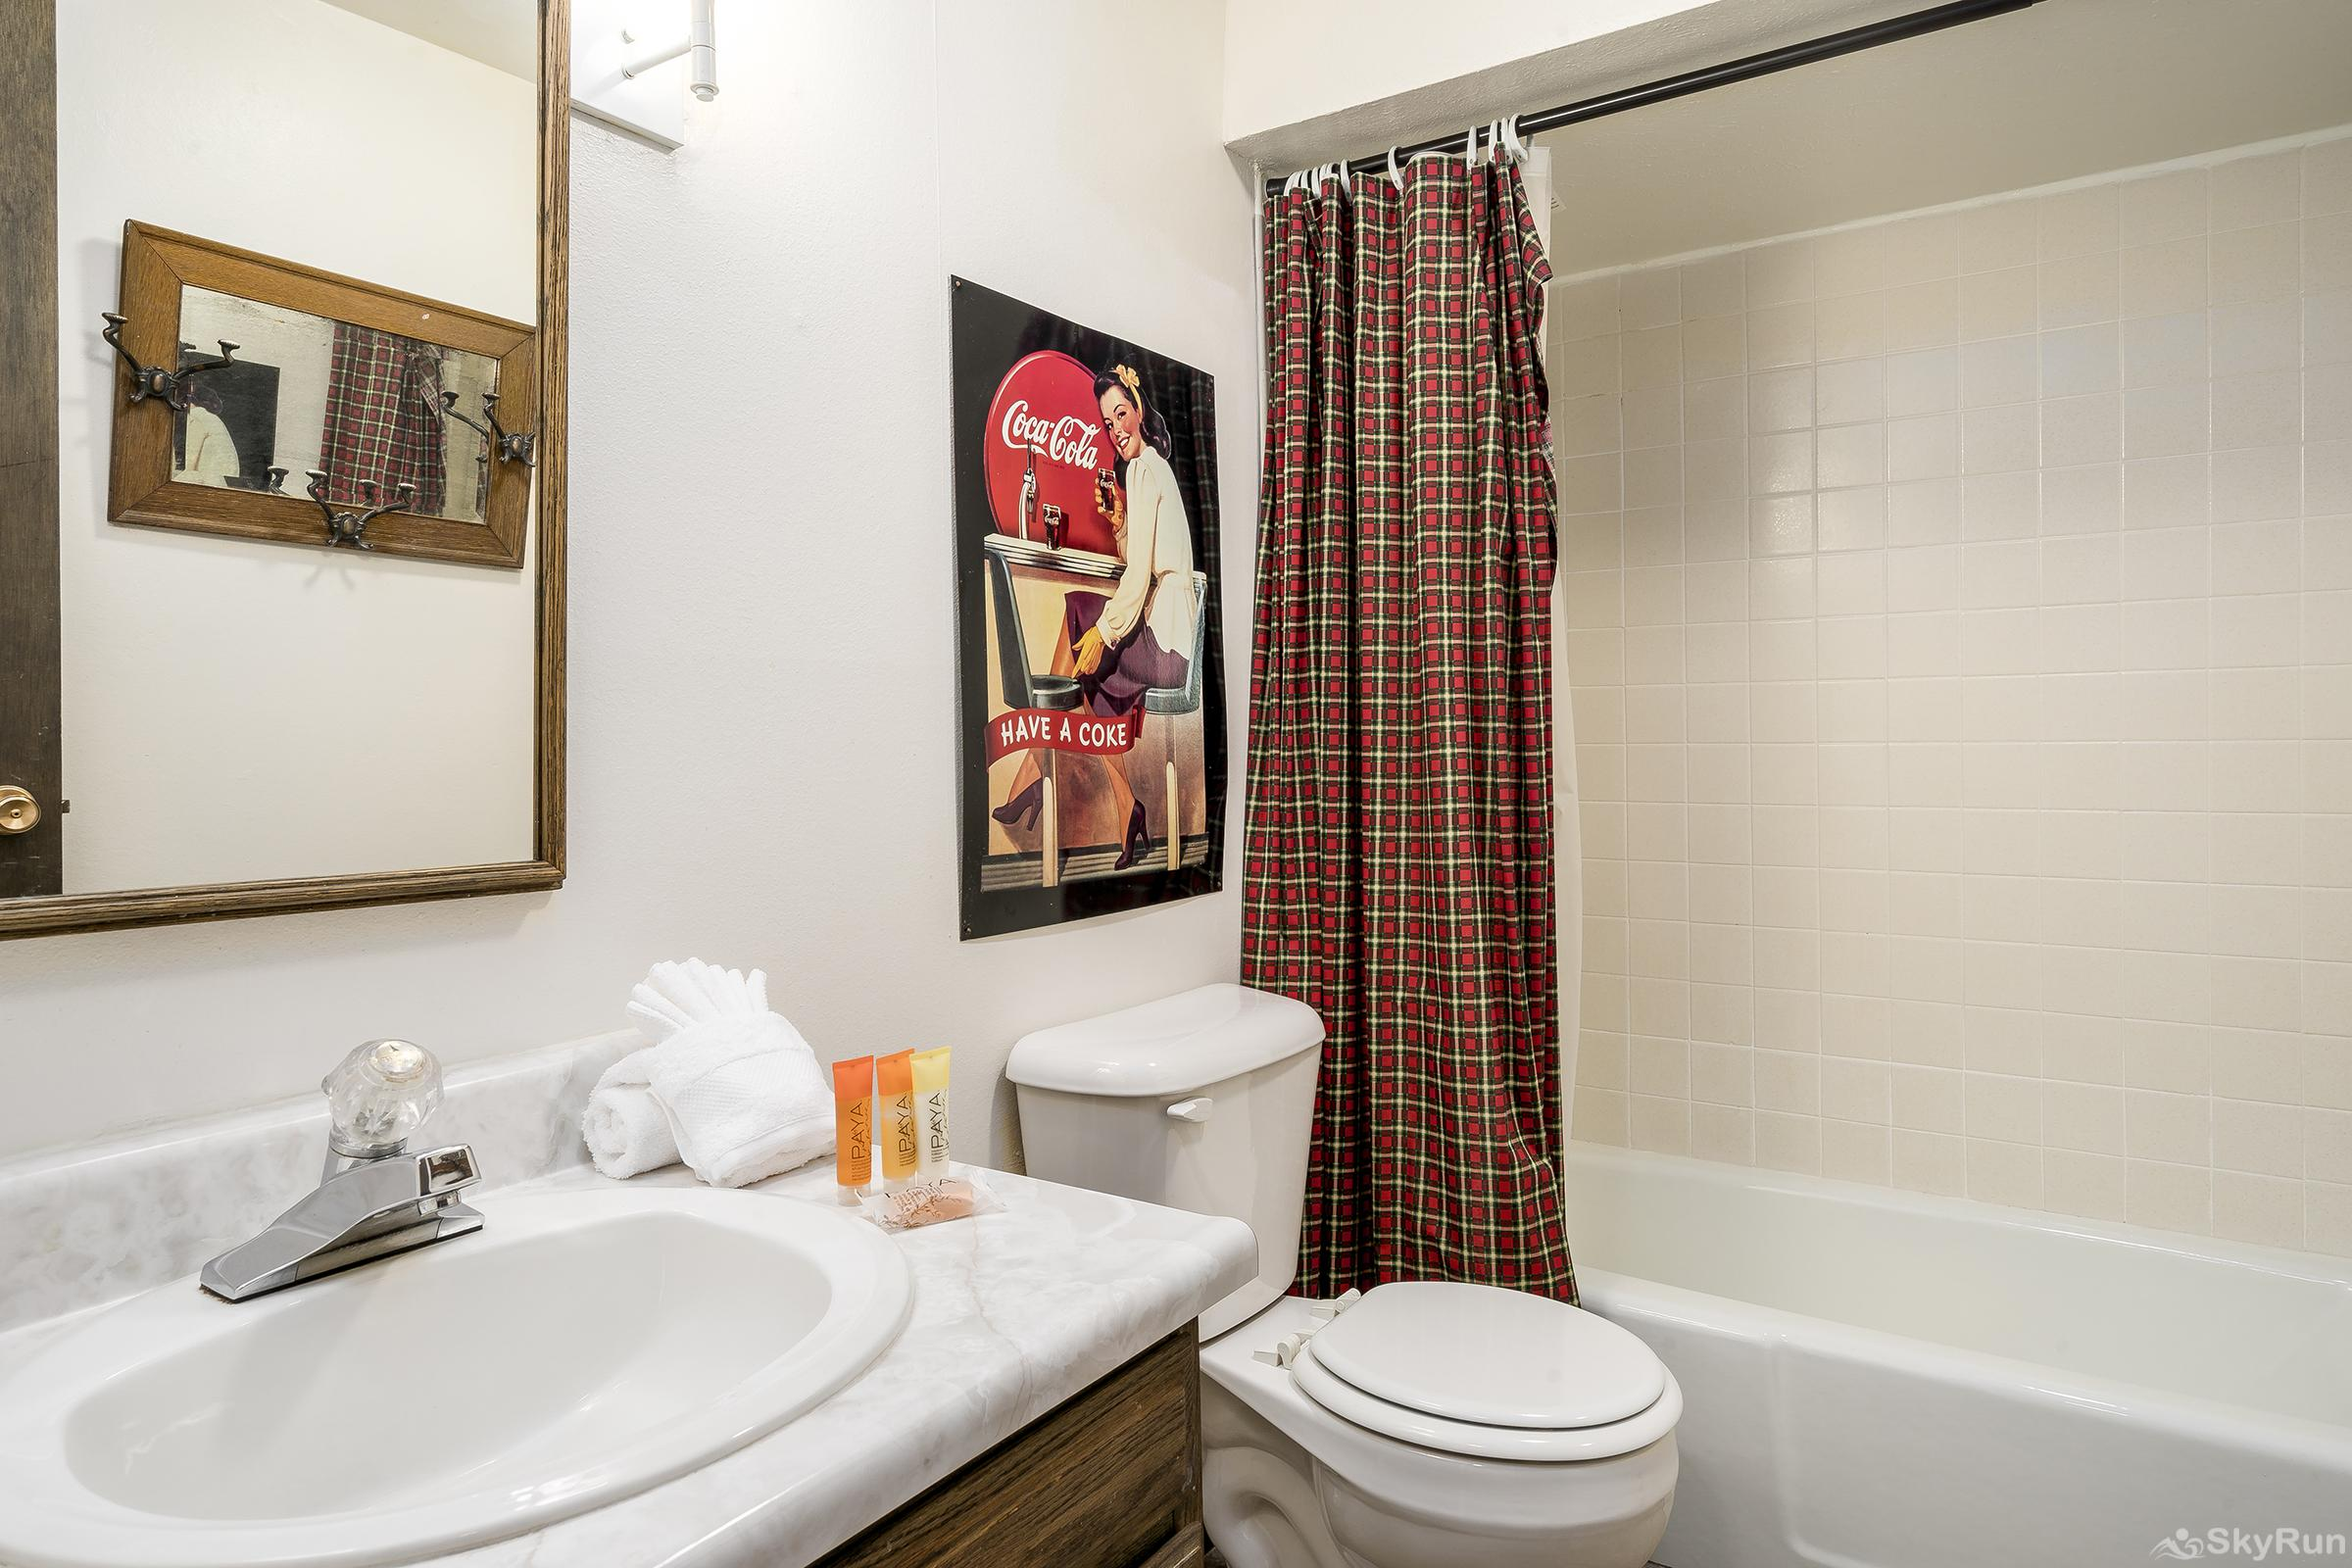 Herbage Townhomes E1 The bathroom has a fun, vintage vibe!